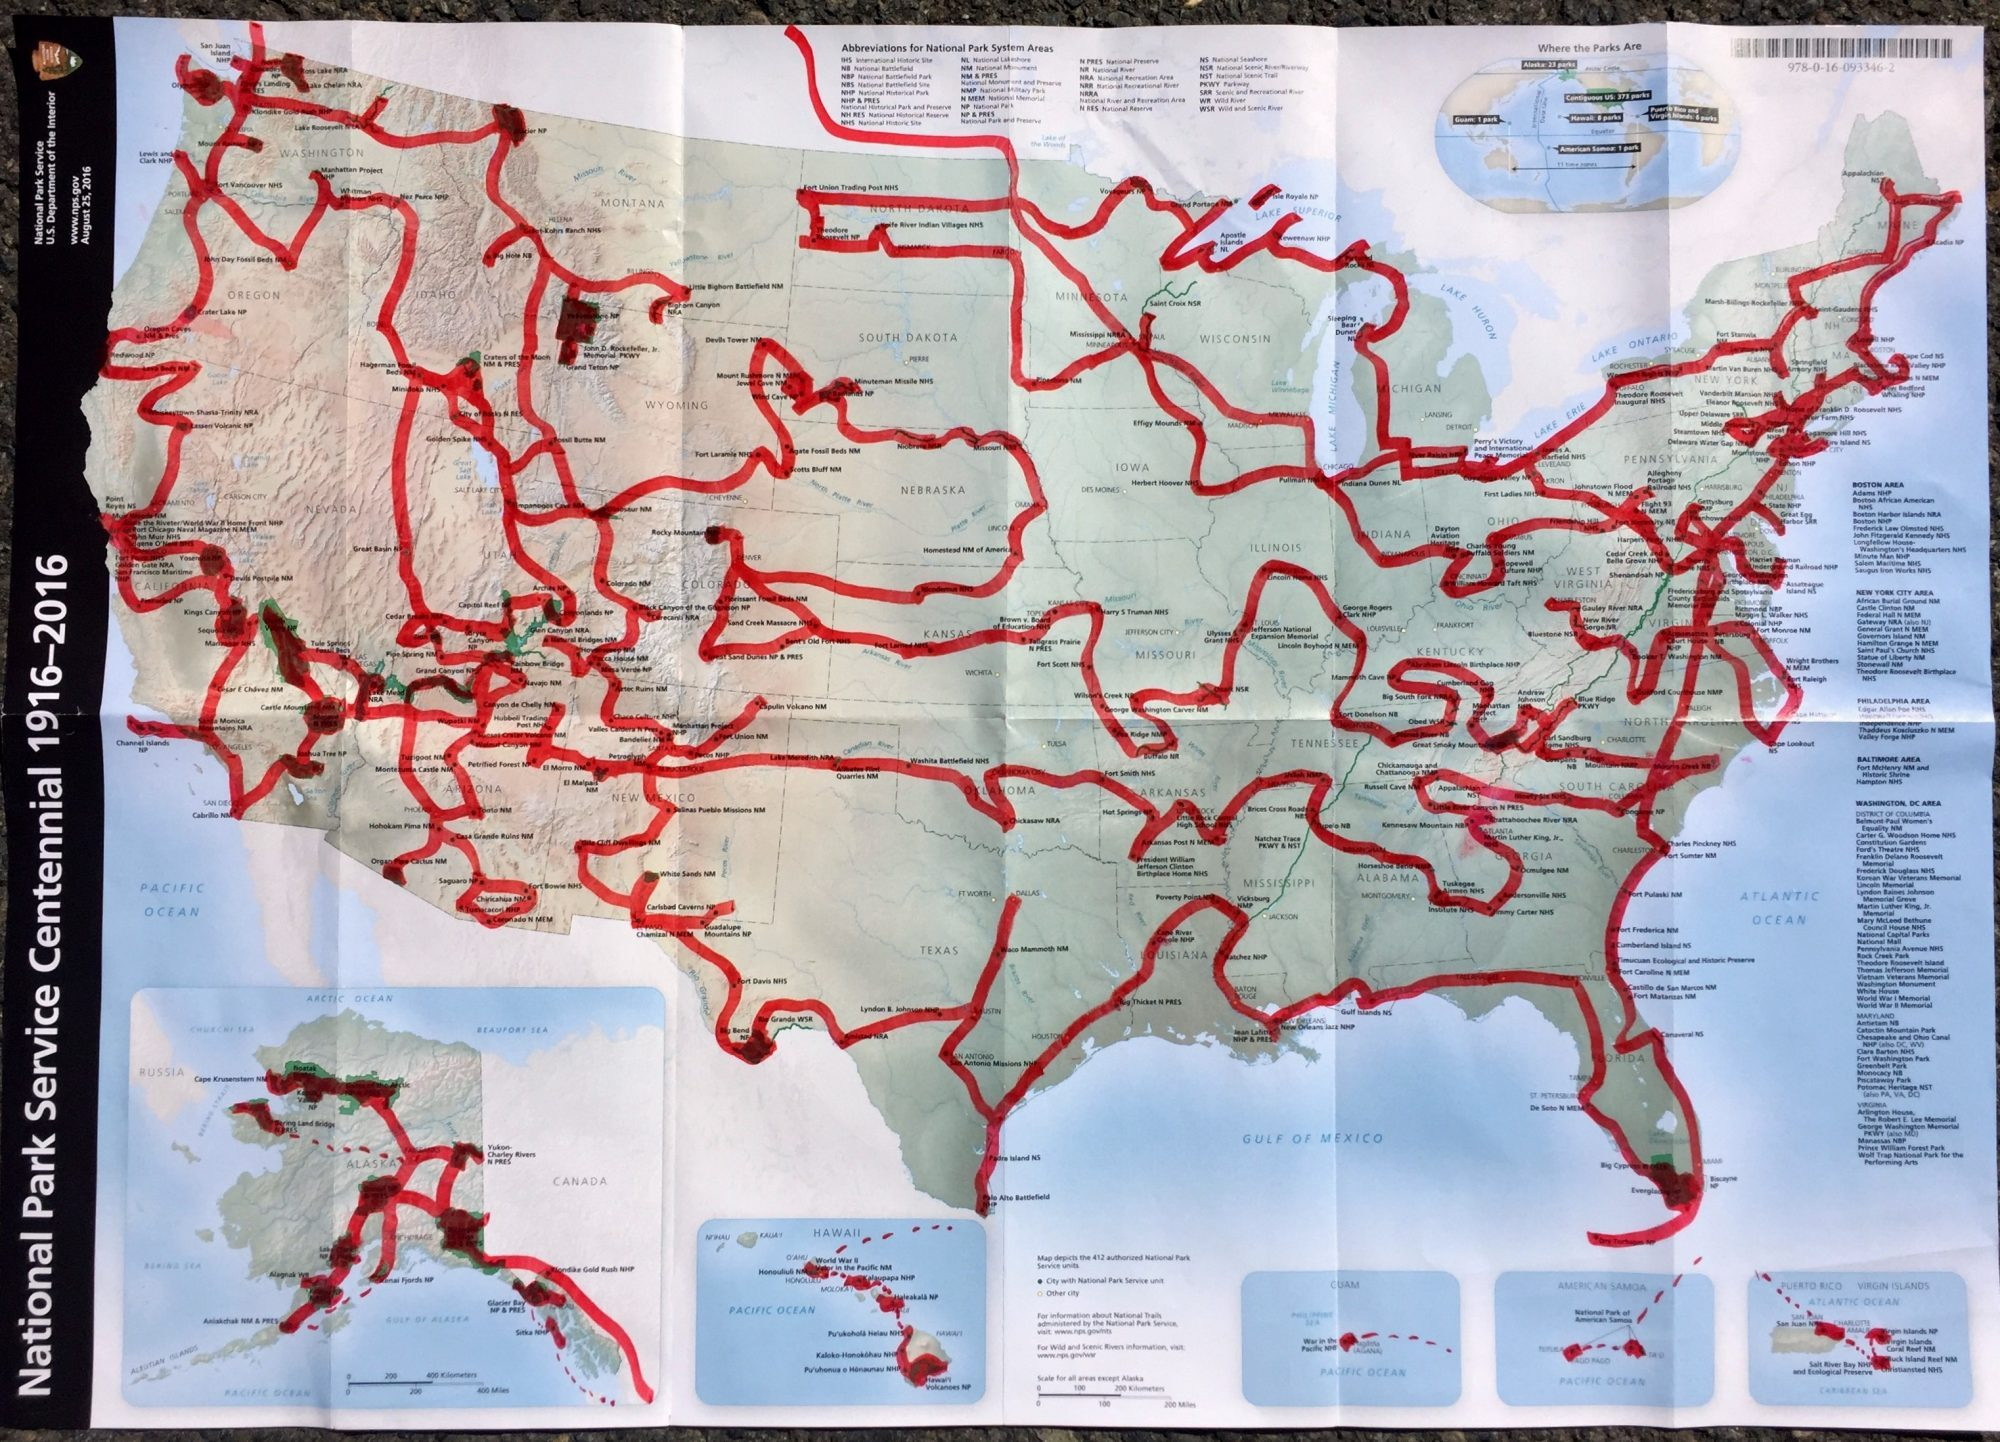 Man on three-year trip to visit all 417 national parks